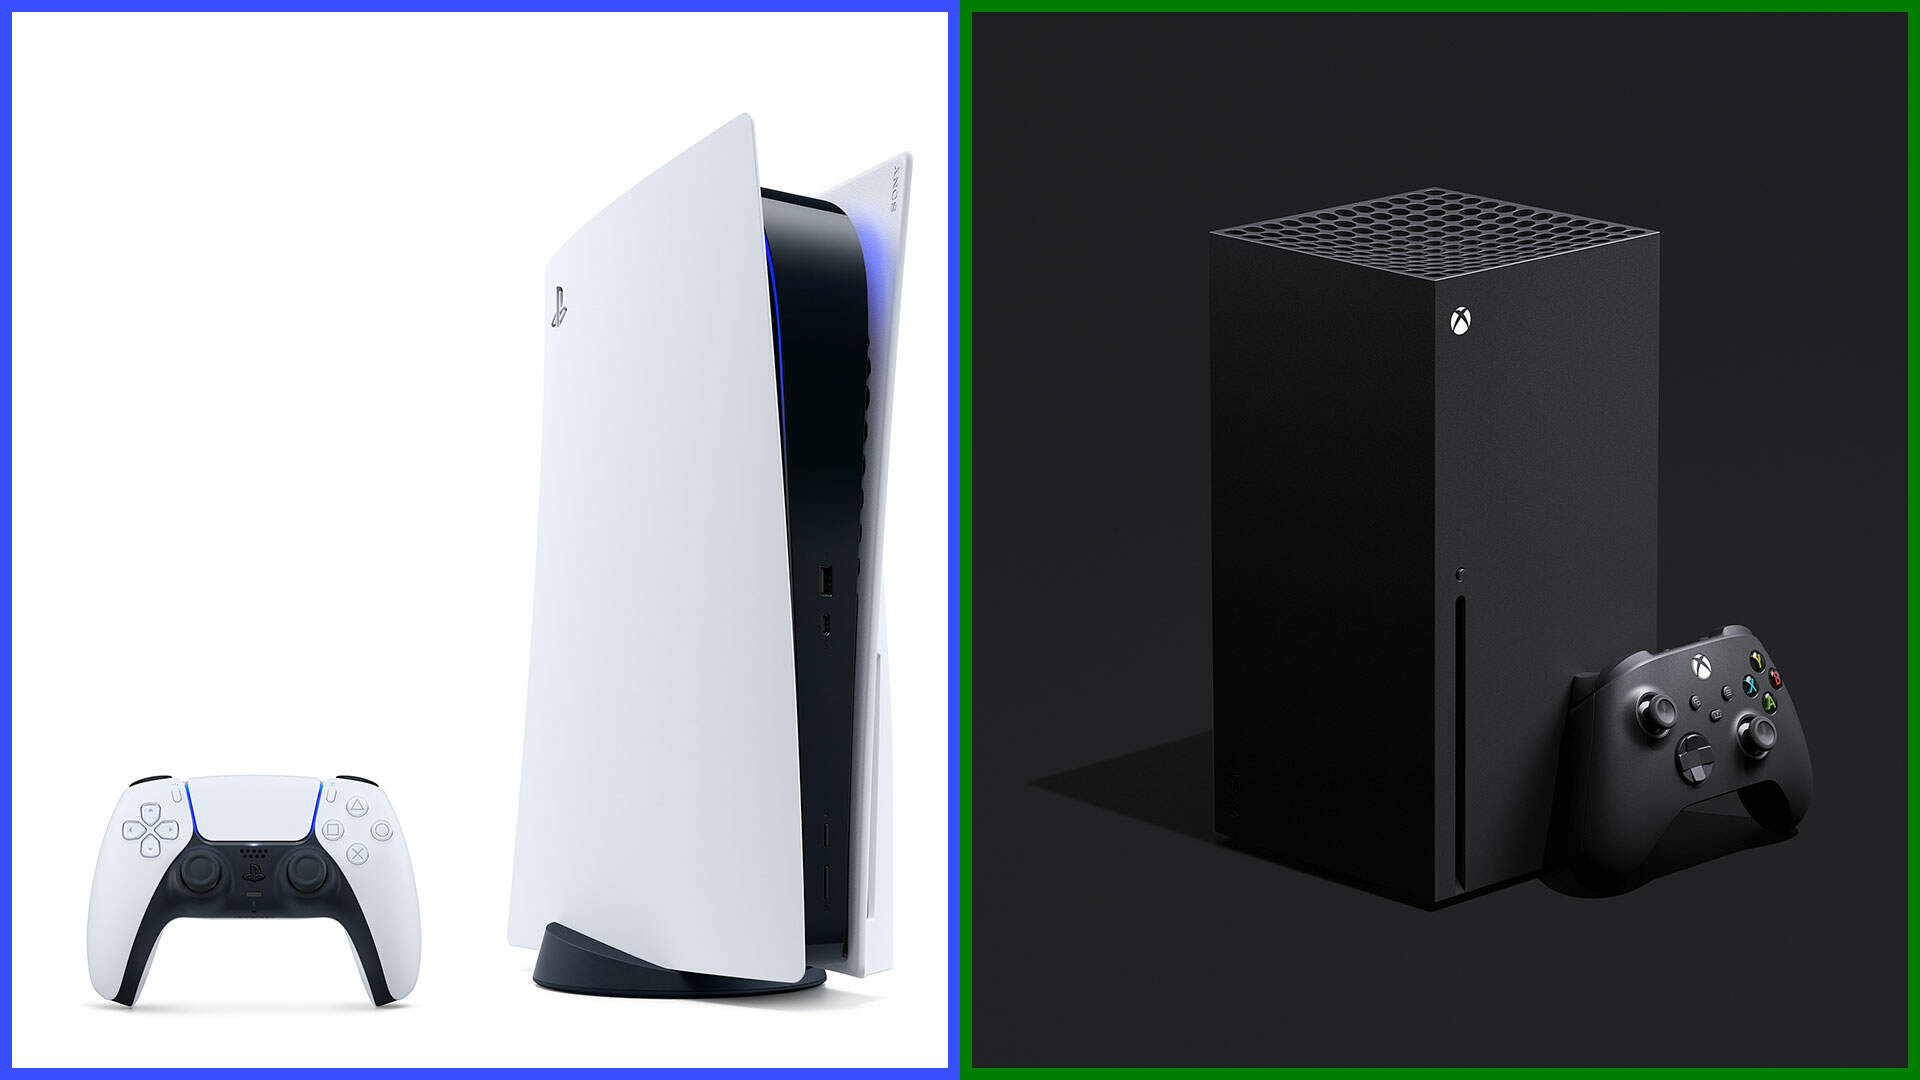 USgamer Roundtable: Which Next-Gen Console Looks Stronger Right Now, PlayStation 5 or Xbox Series X?